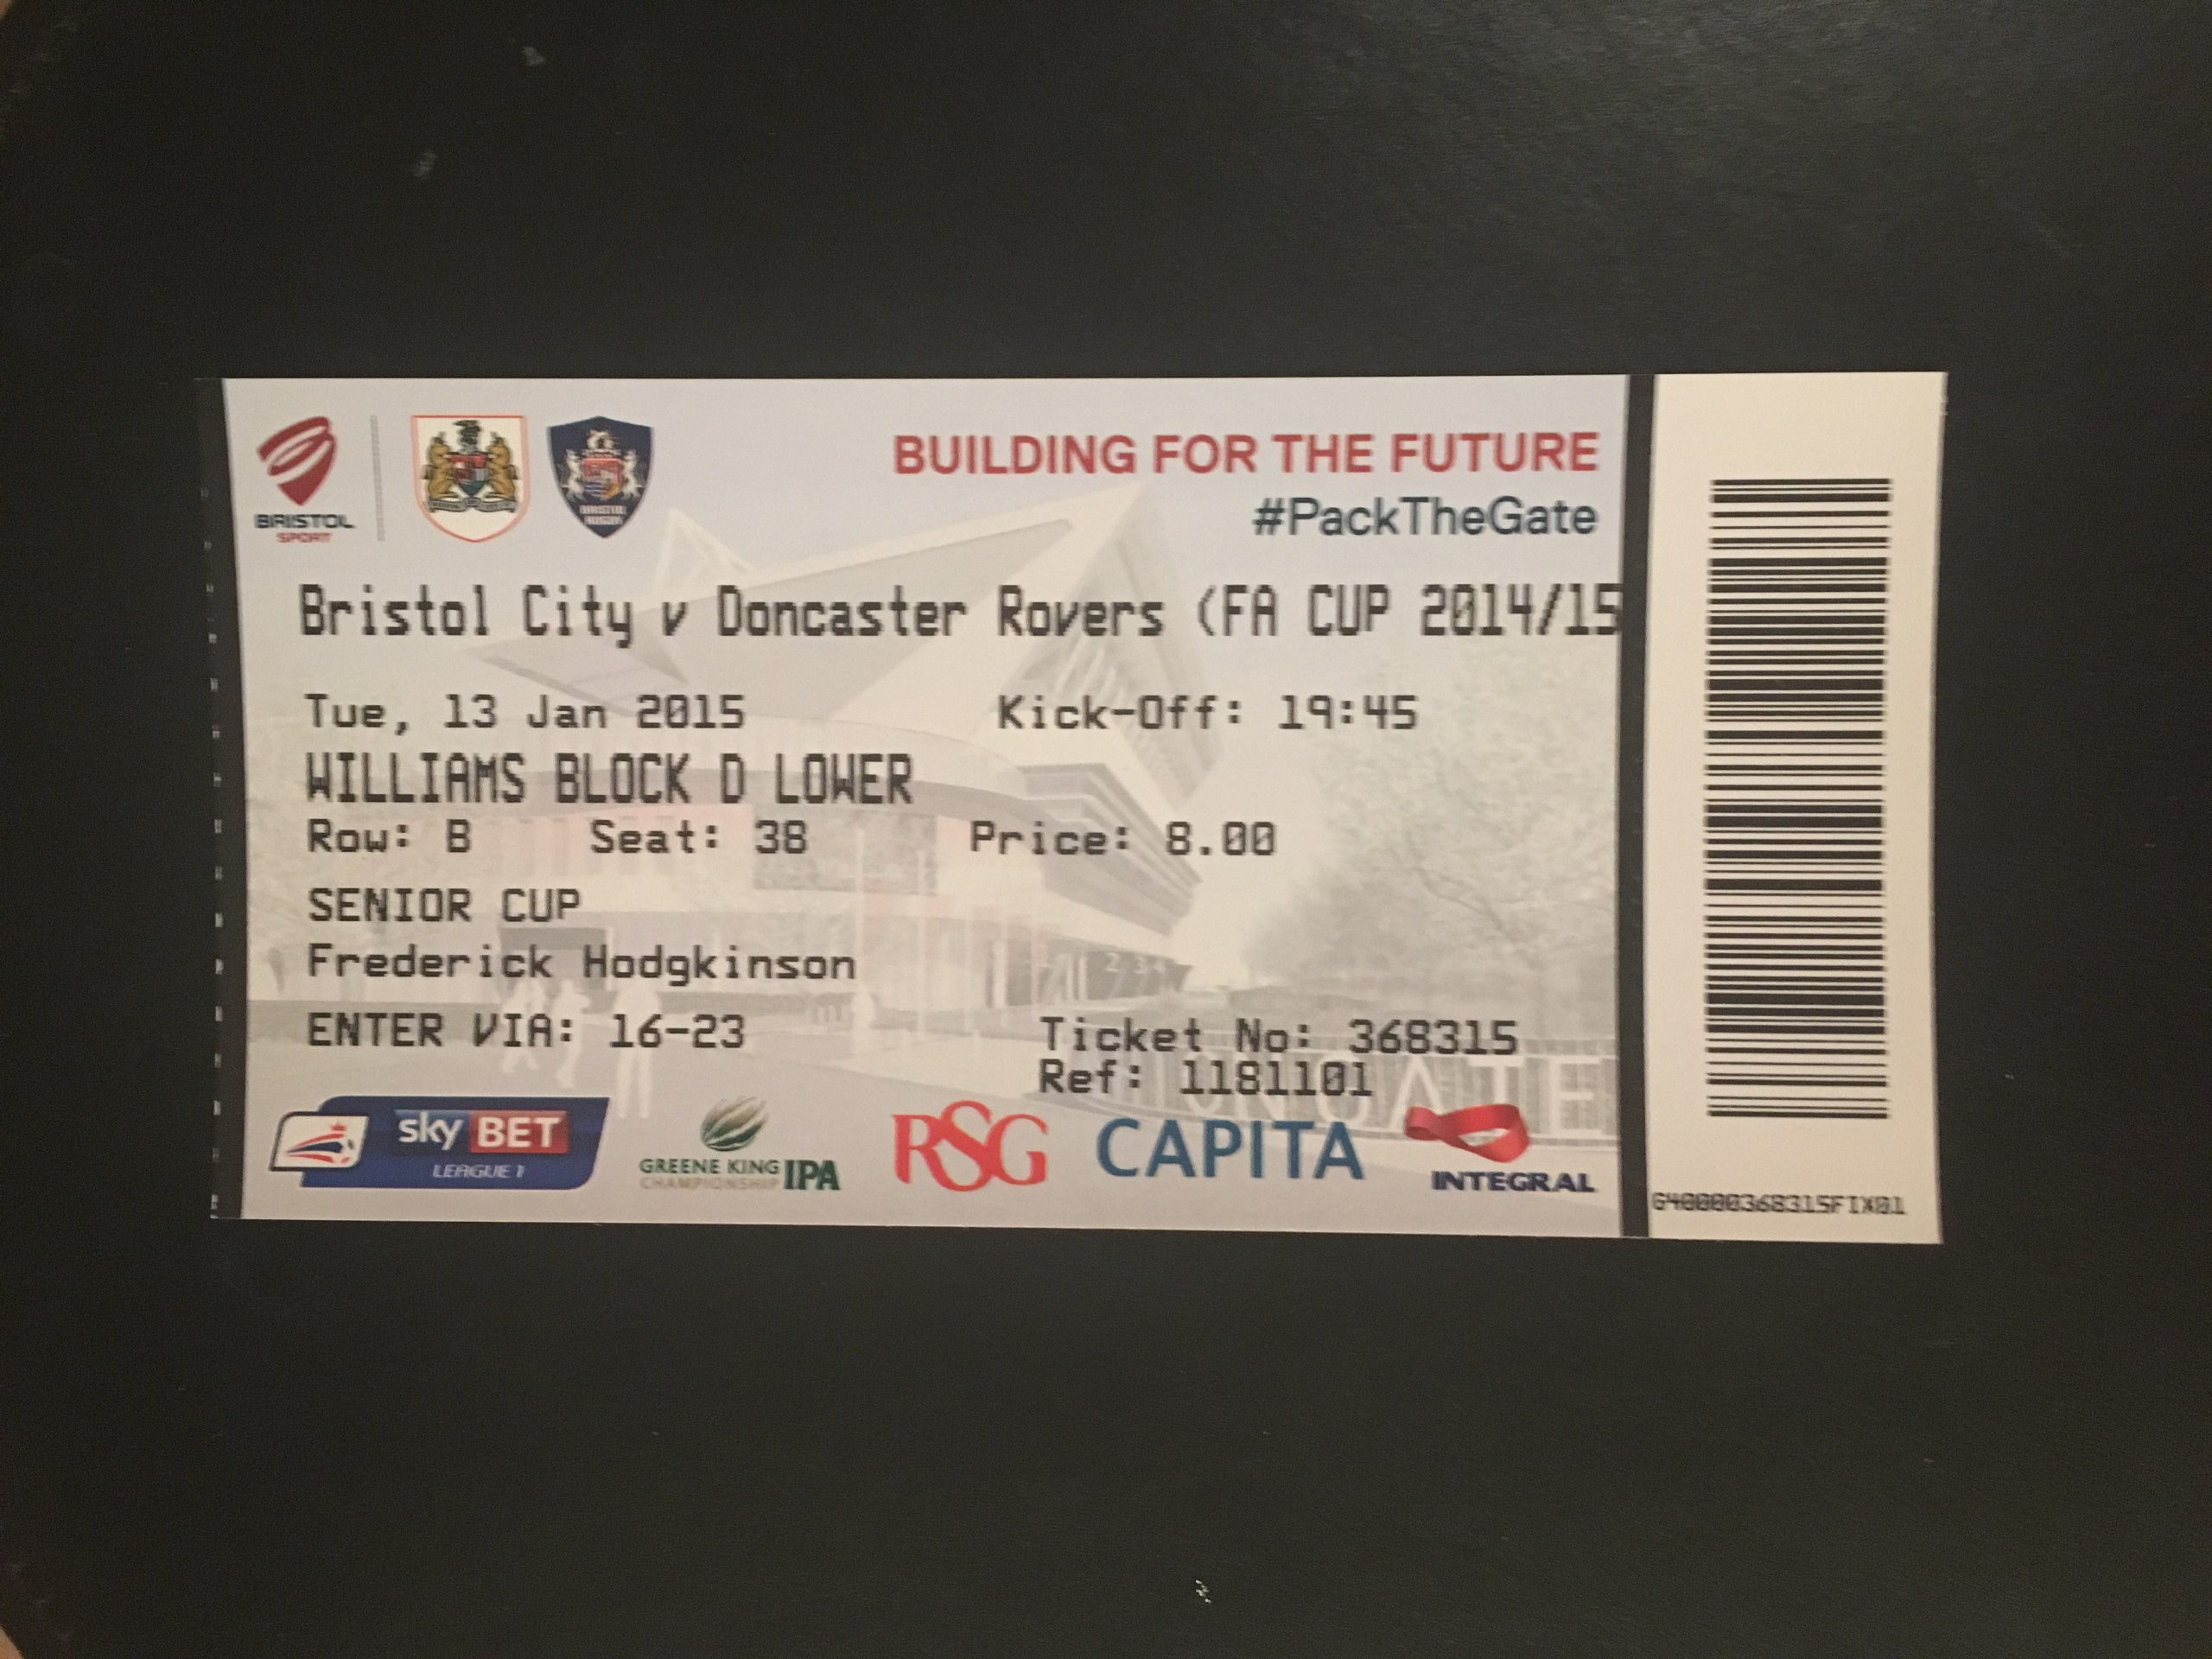 Bristol City v Doncaster Rovers 13-01-2015 Ticket